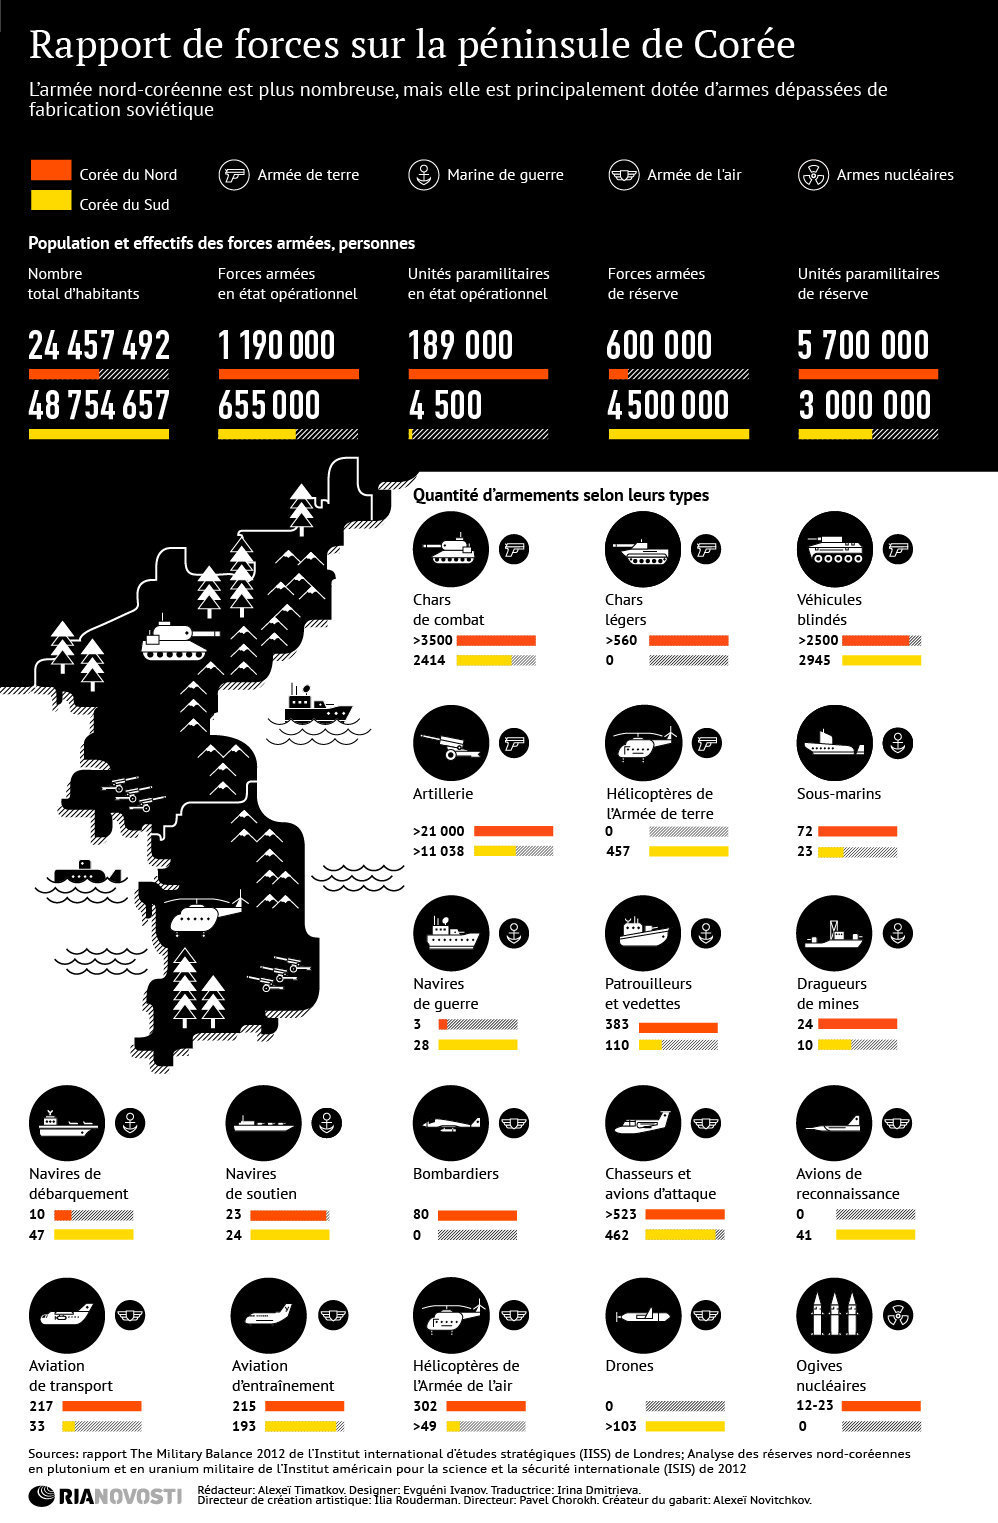 infographie-forces-armee-coree-sud-nord